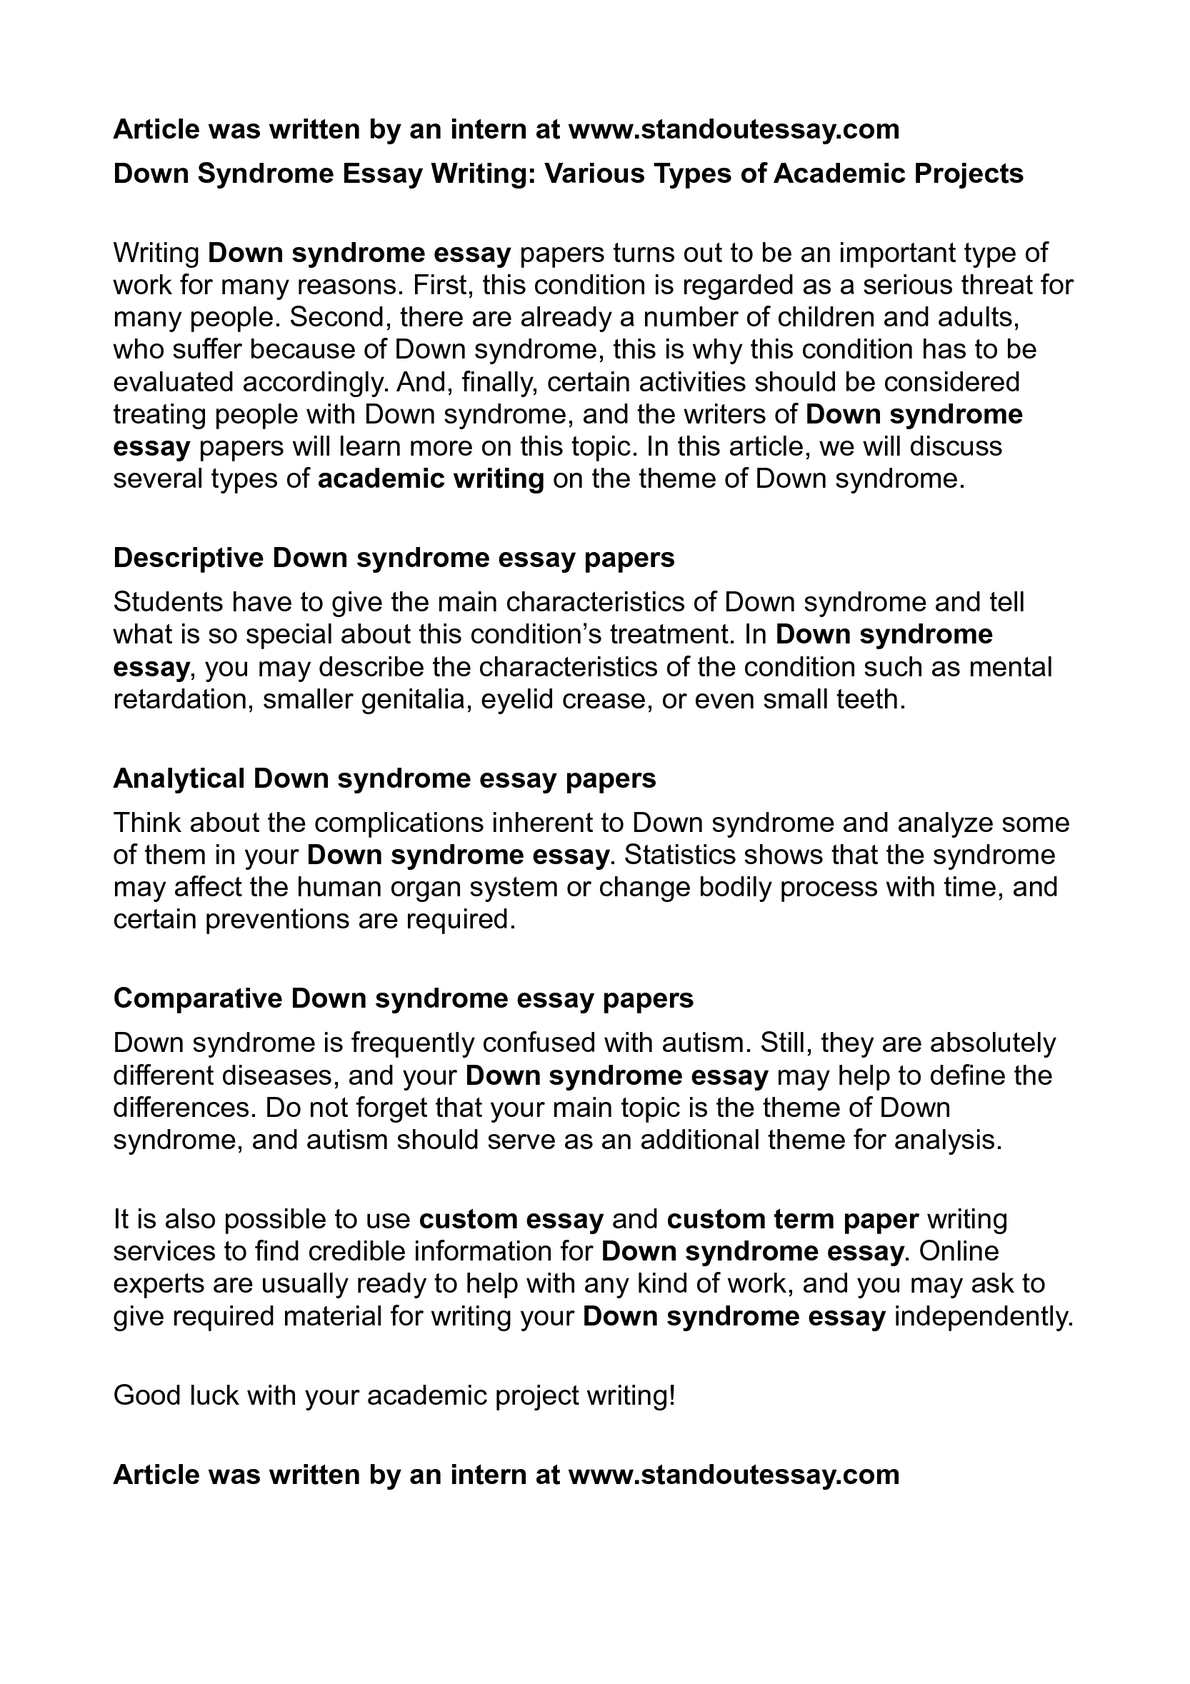 calam eacute o down syndrome essay writing various types of academic calameacuteo down syndrome essay writing various types of academic projects